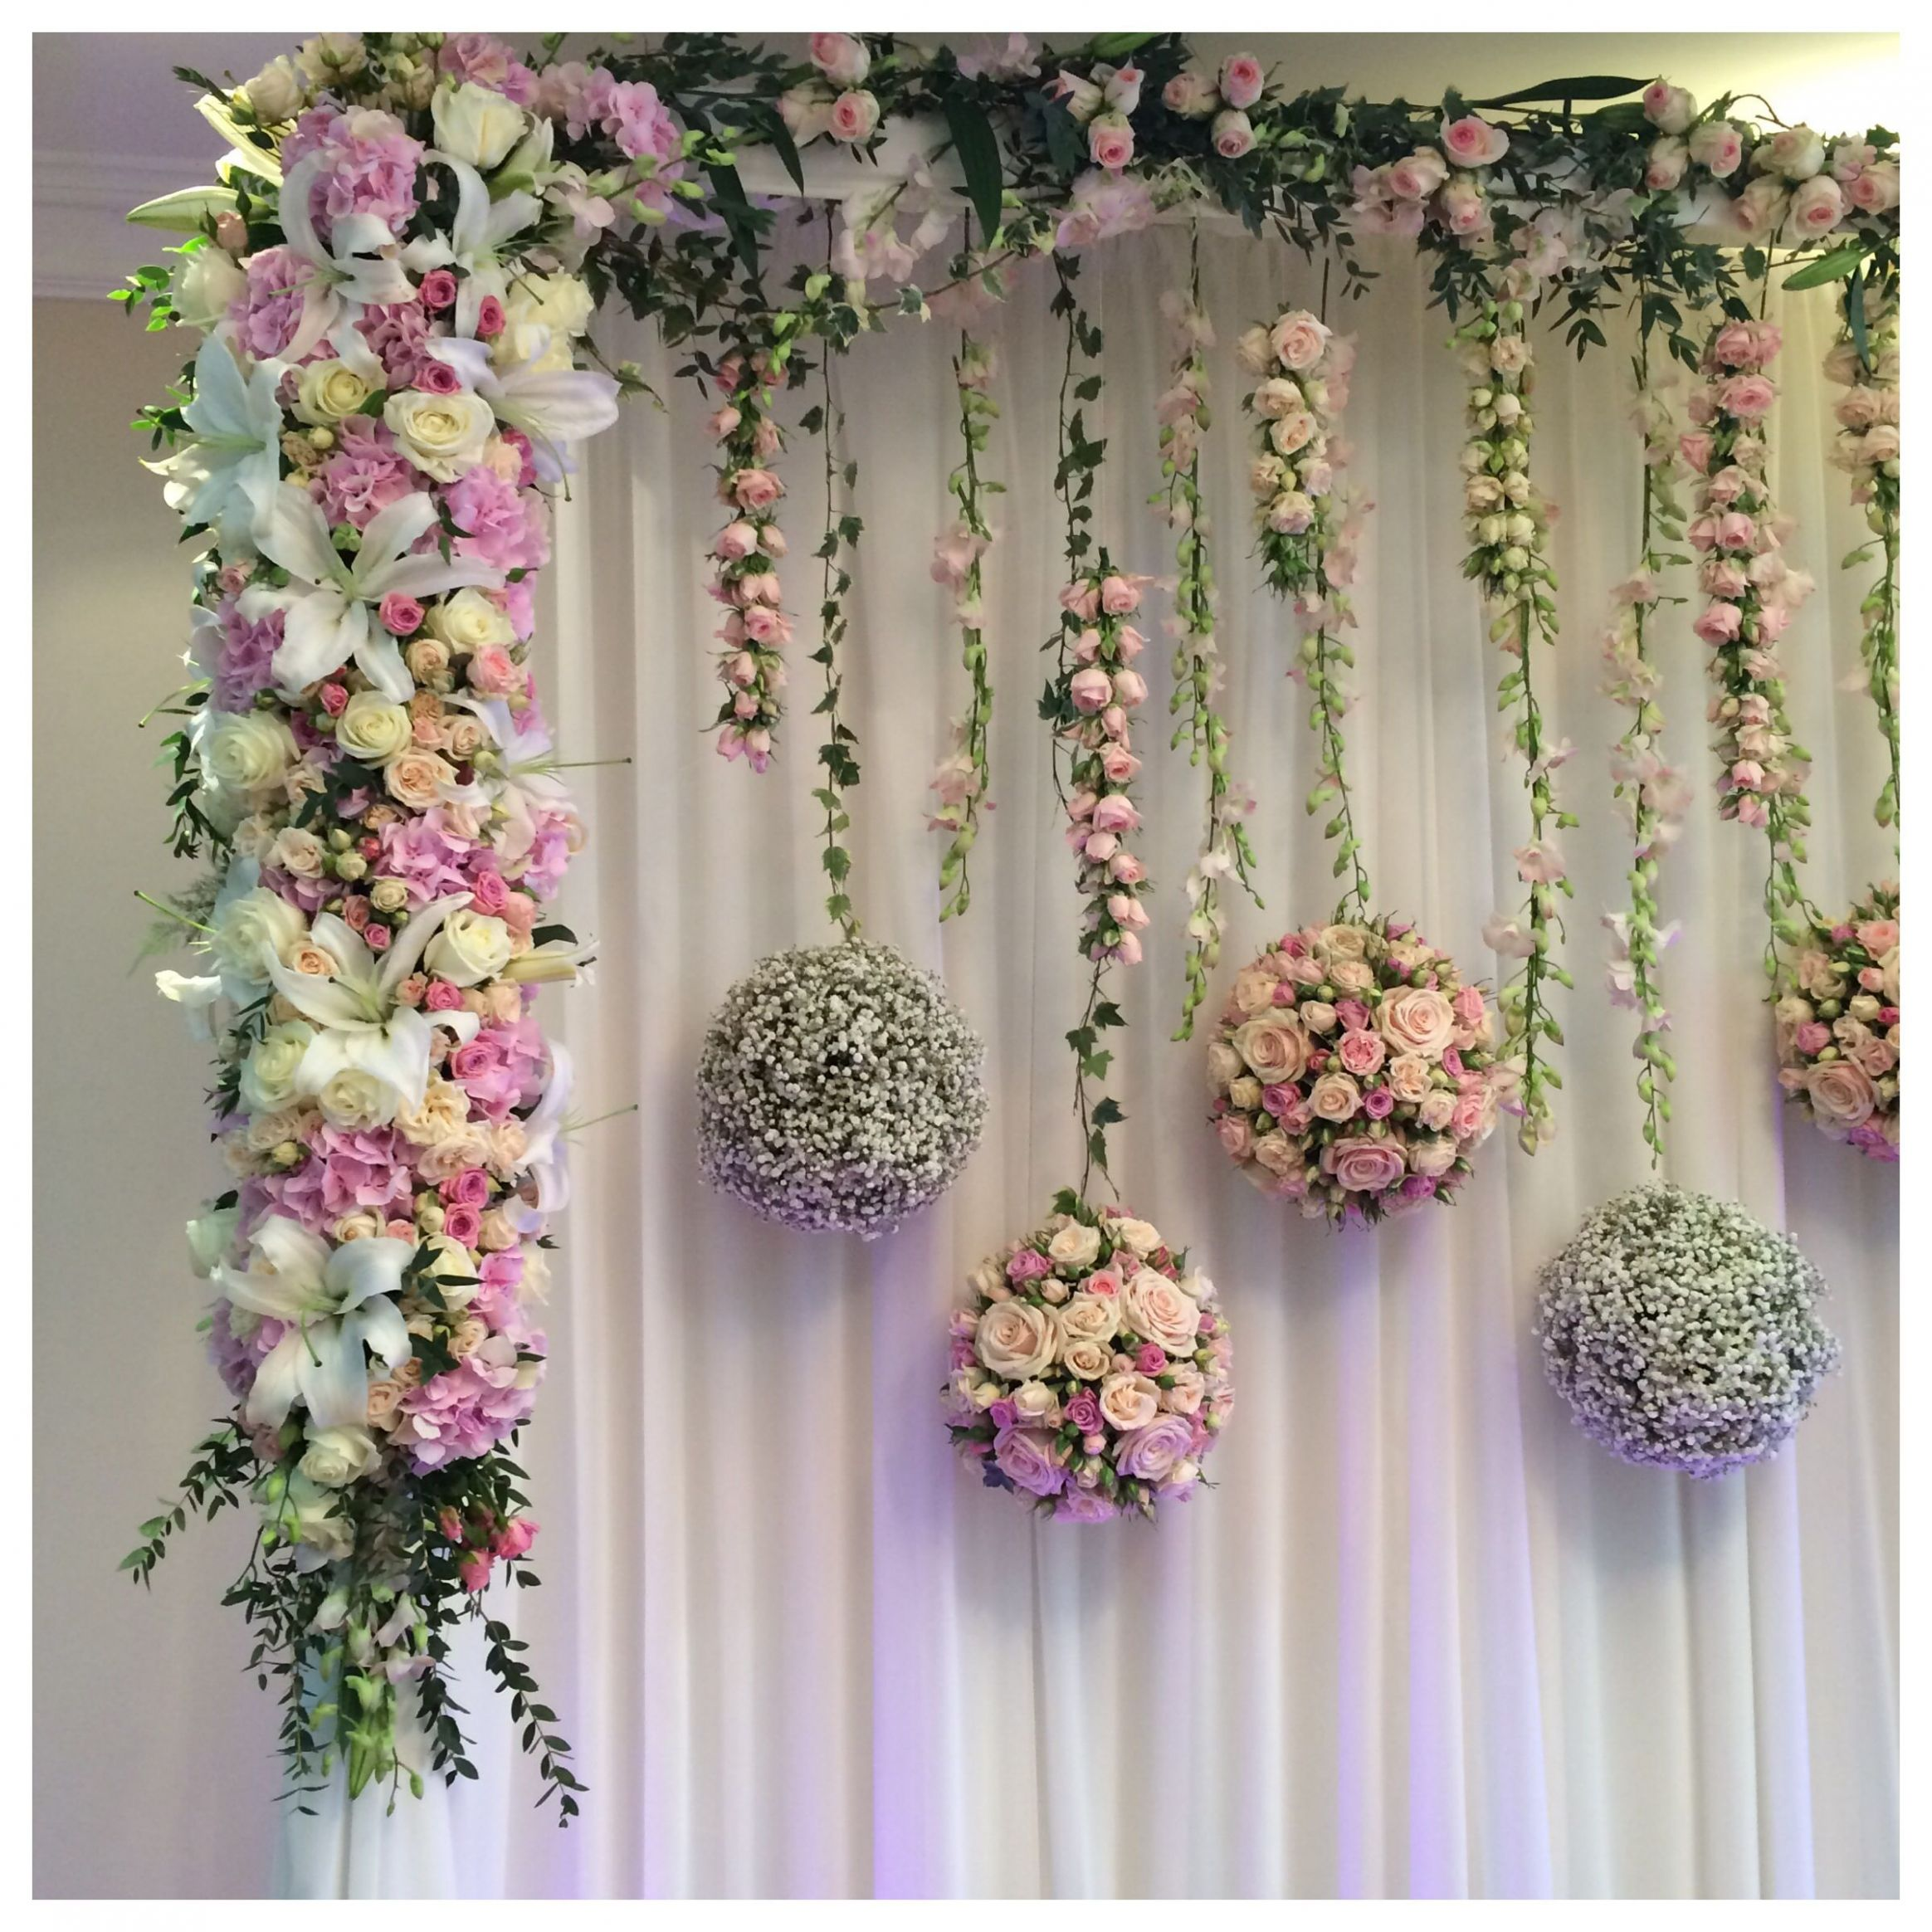 Engagement Party Flower Wall Decor. I bought a bunch of flowers at ..